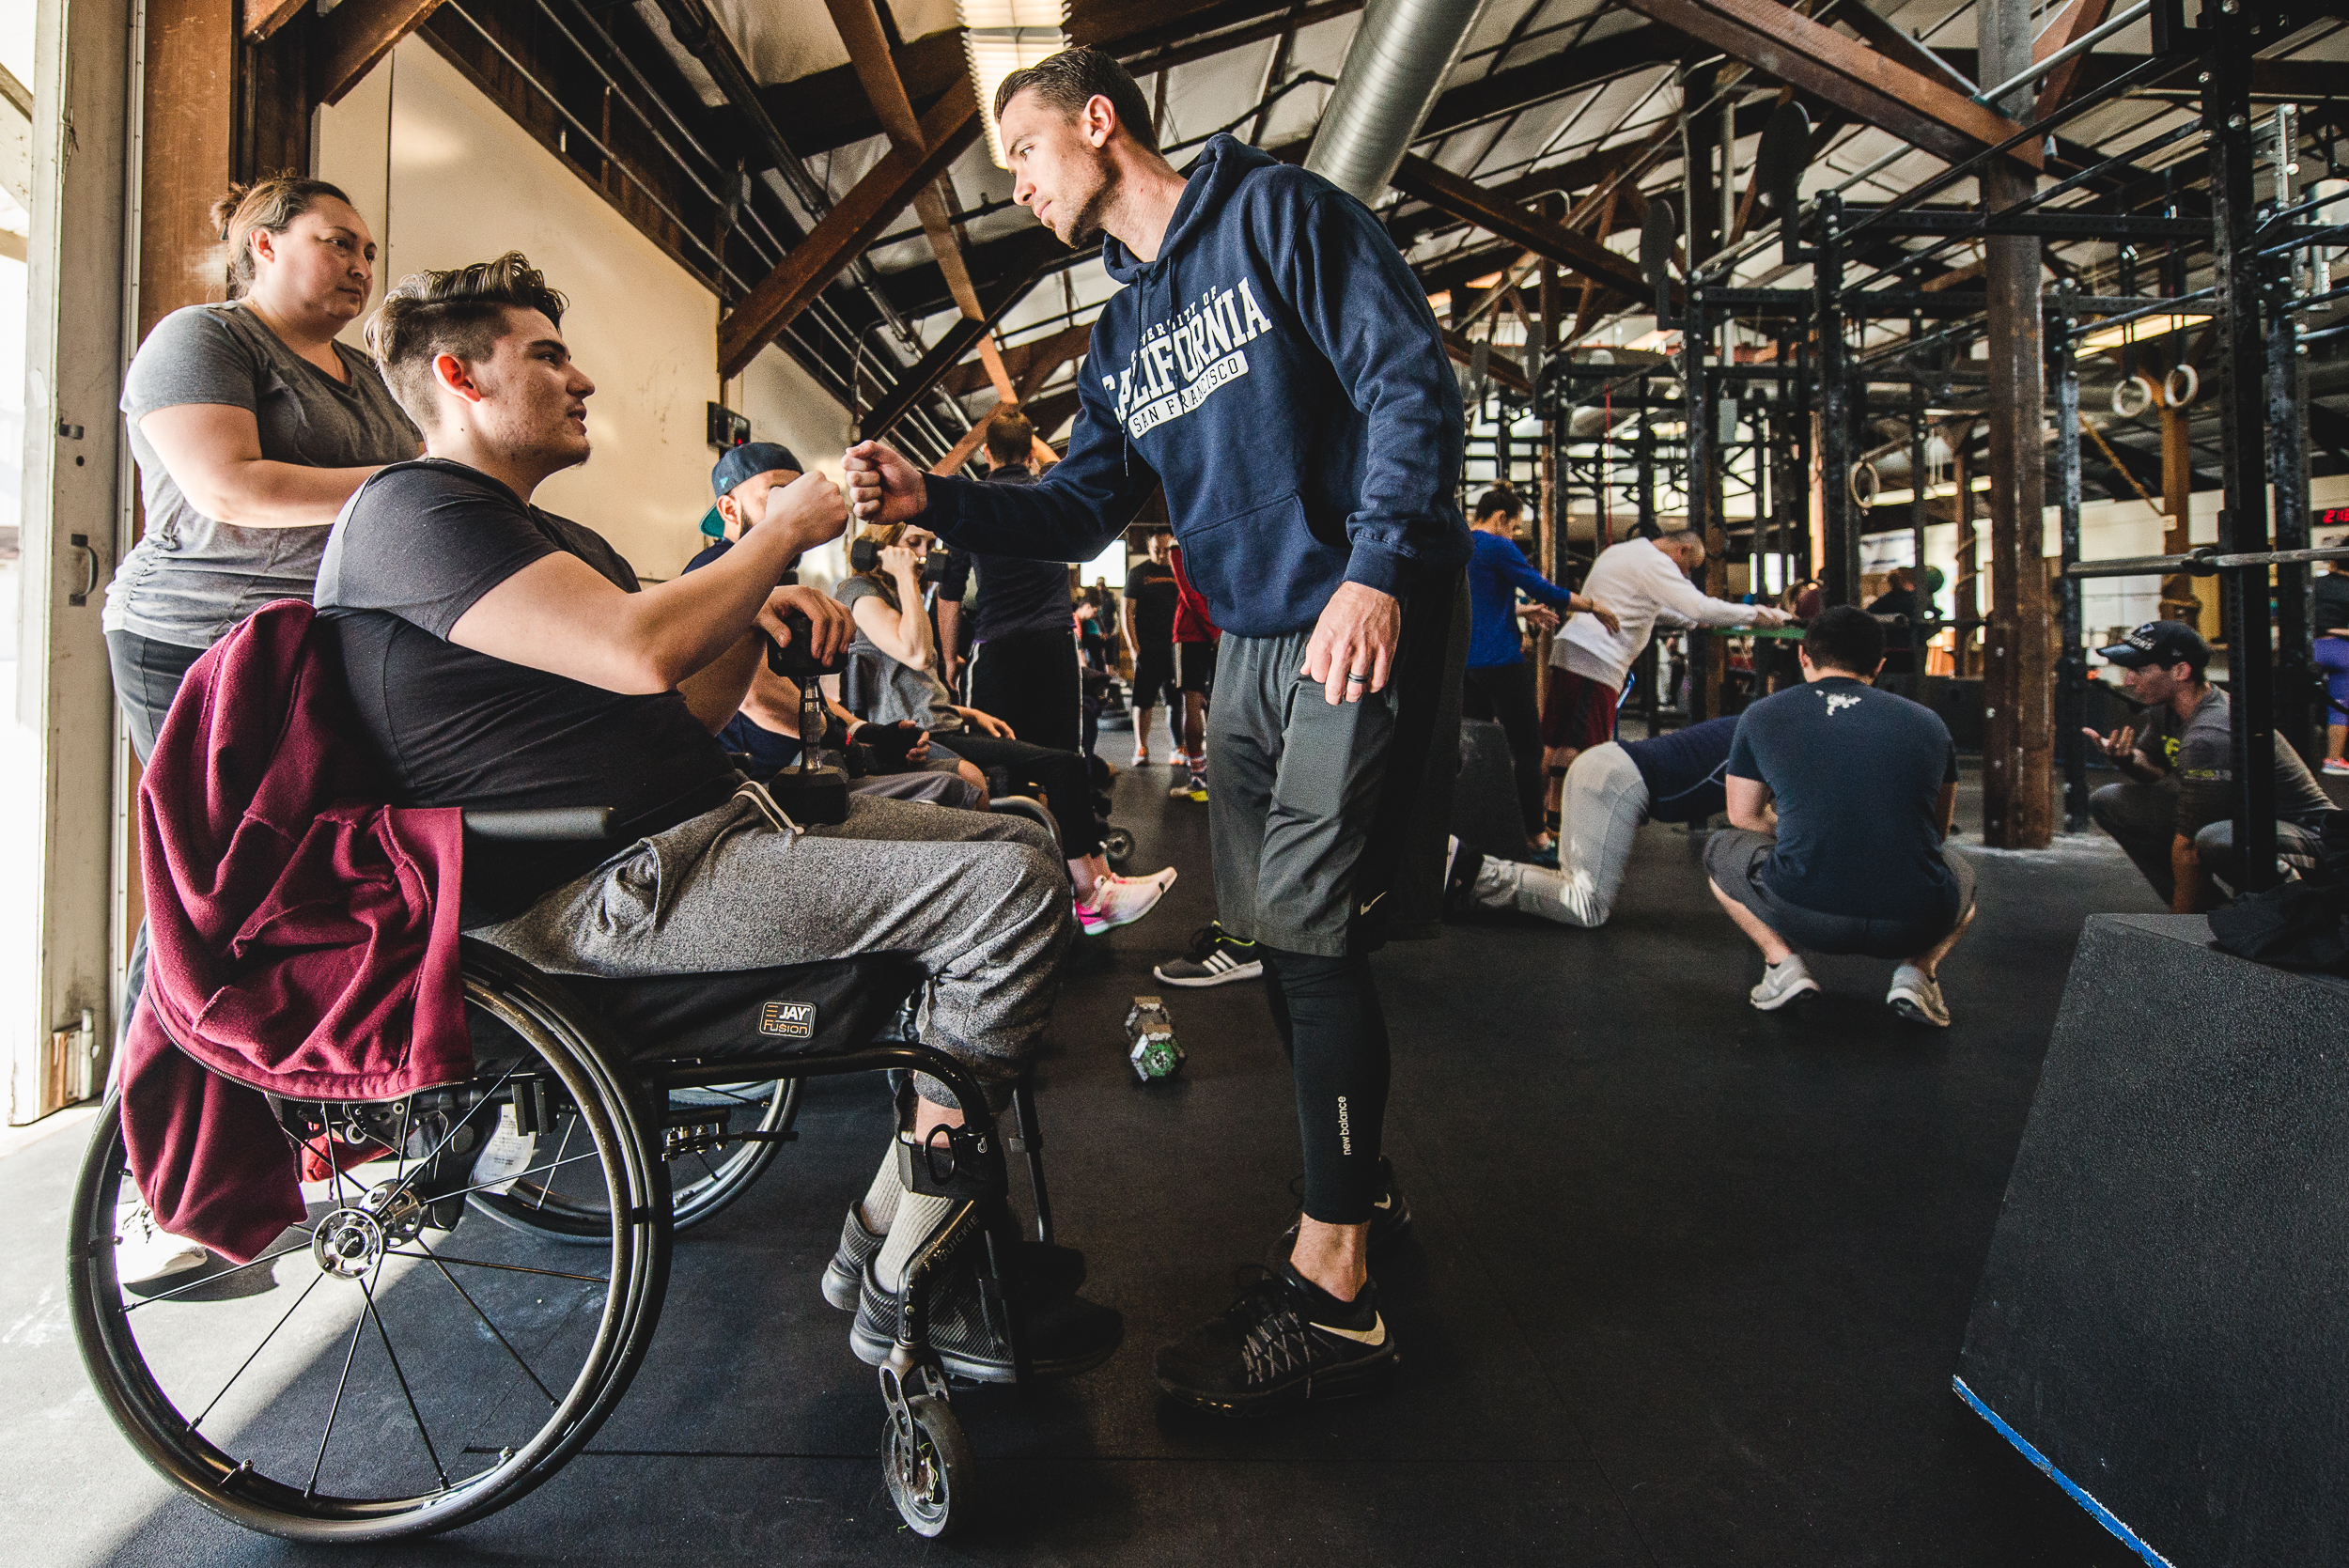 2017 Adaptive Athletic Clinic, Photo Alessio Neri-001-24.jpg